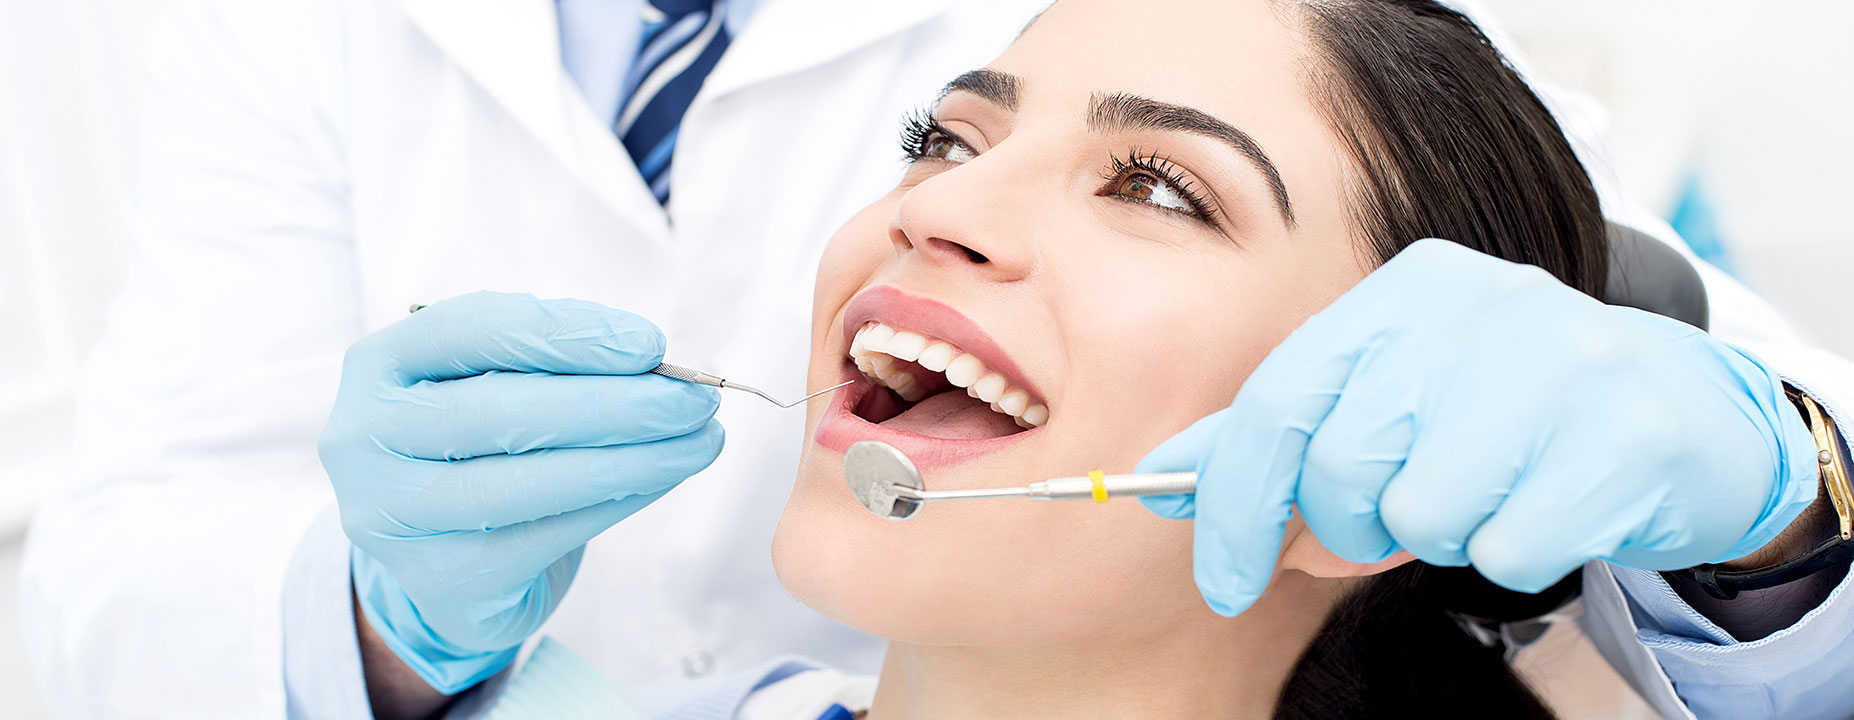 Doctor checking patient's teeth